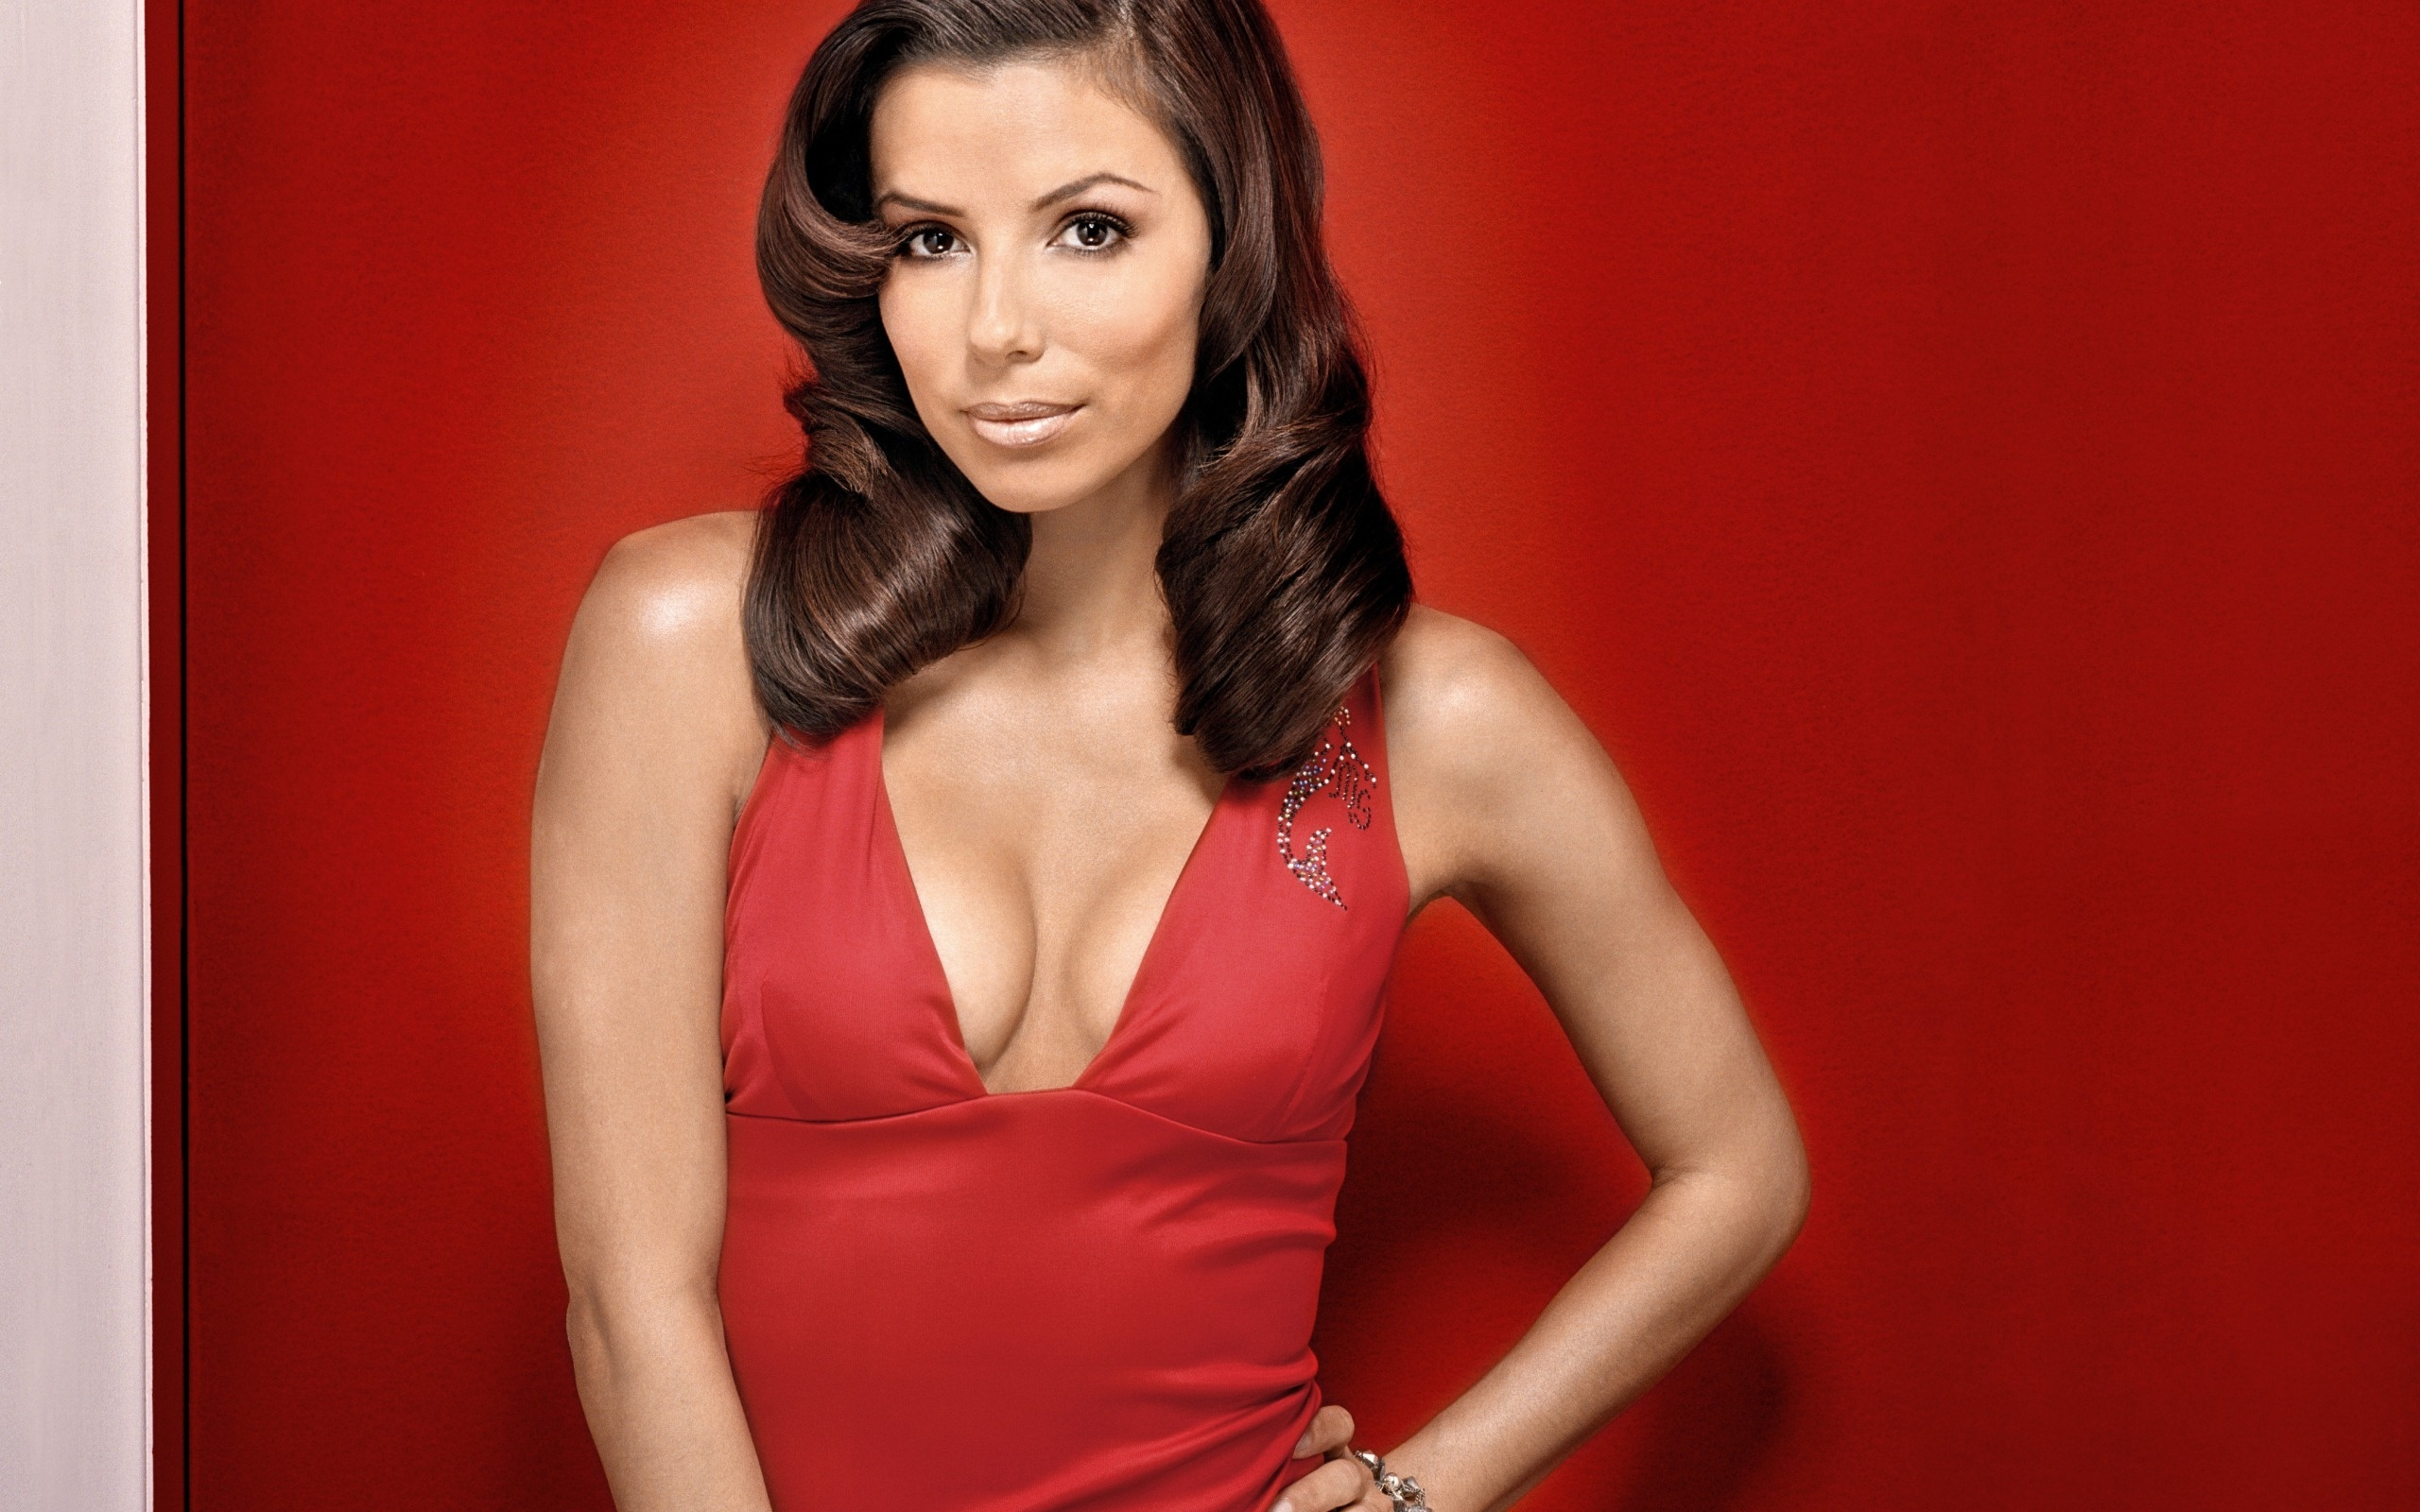 Eva Longoria Hot And Sexy Hd Wallpapers - All Hd Wallpapers-8955